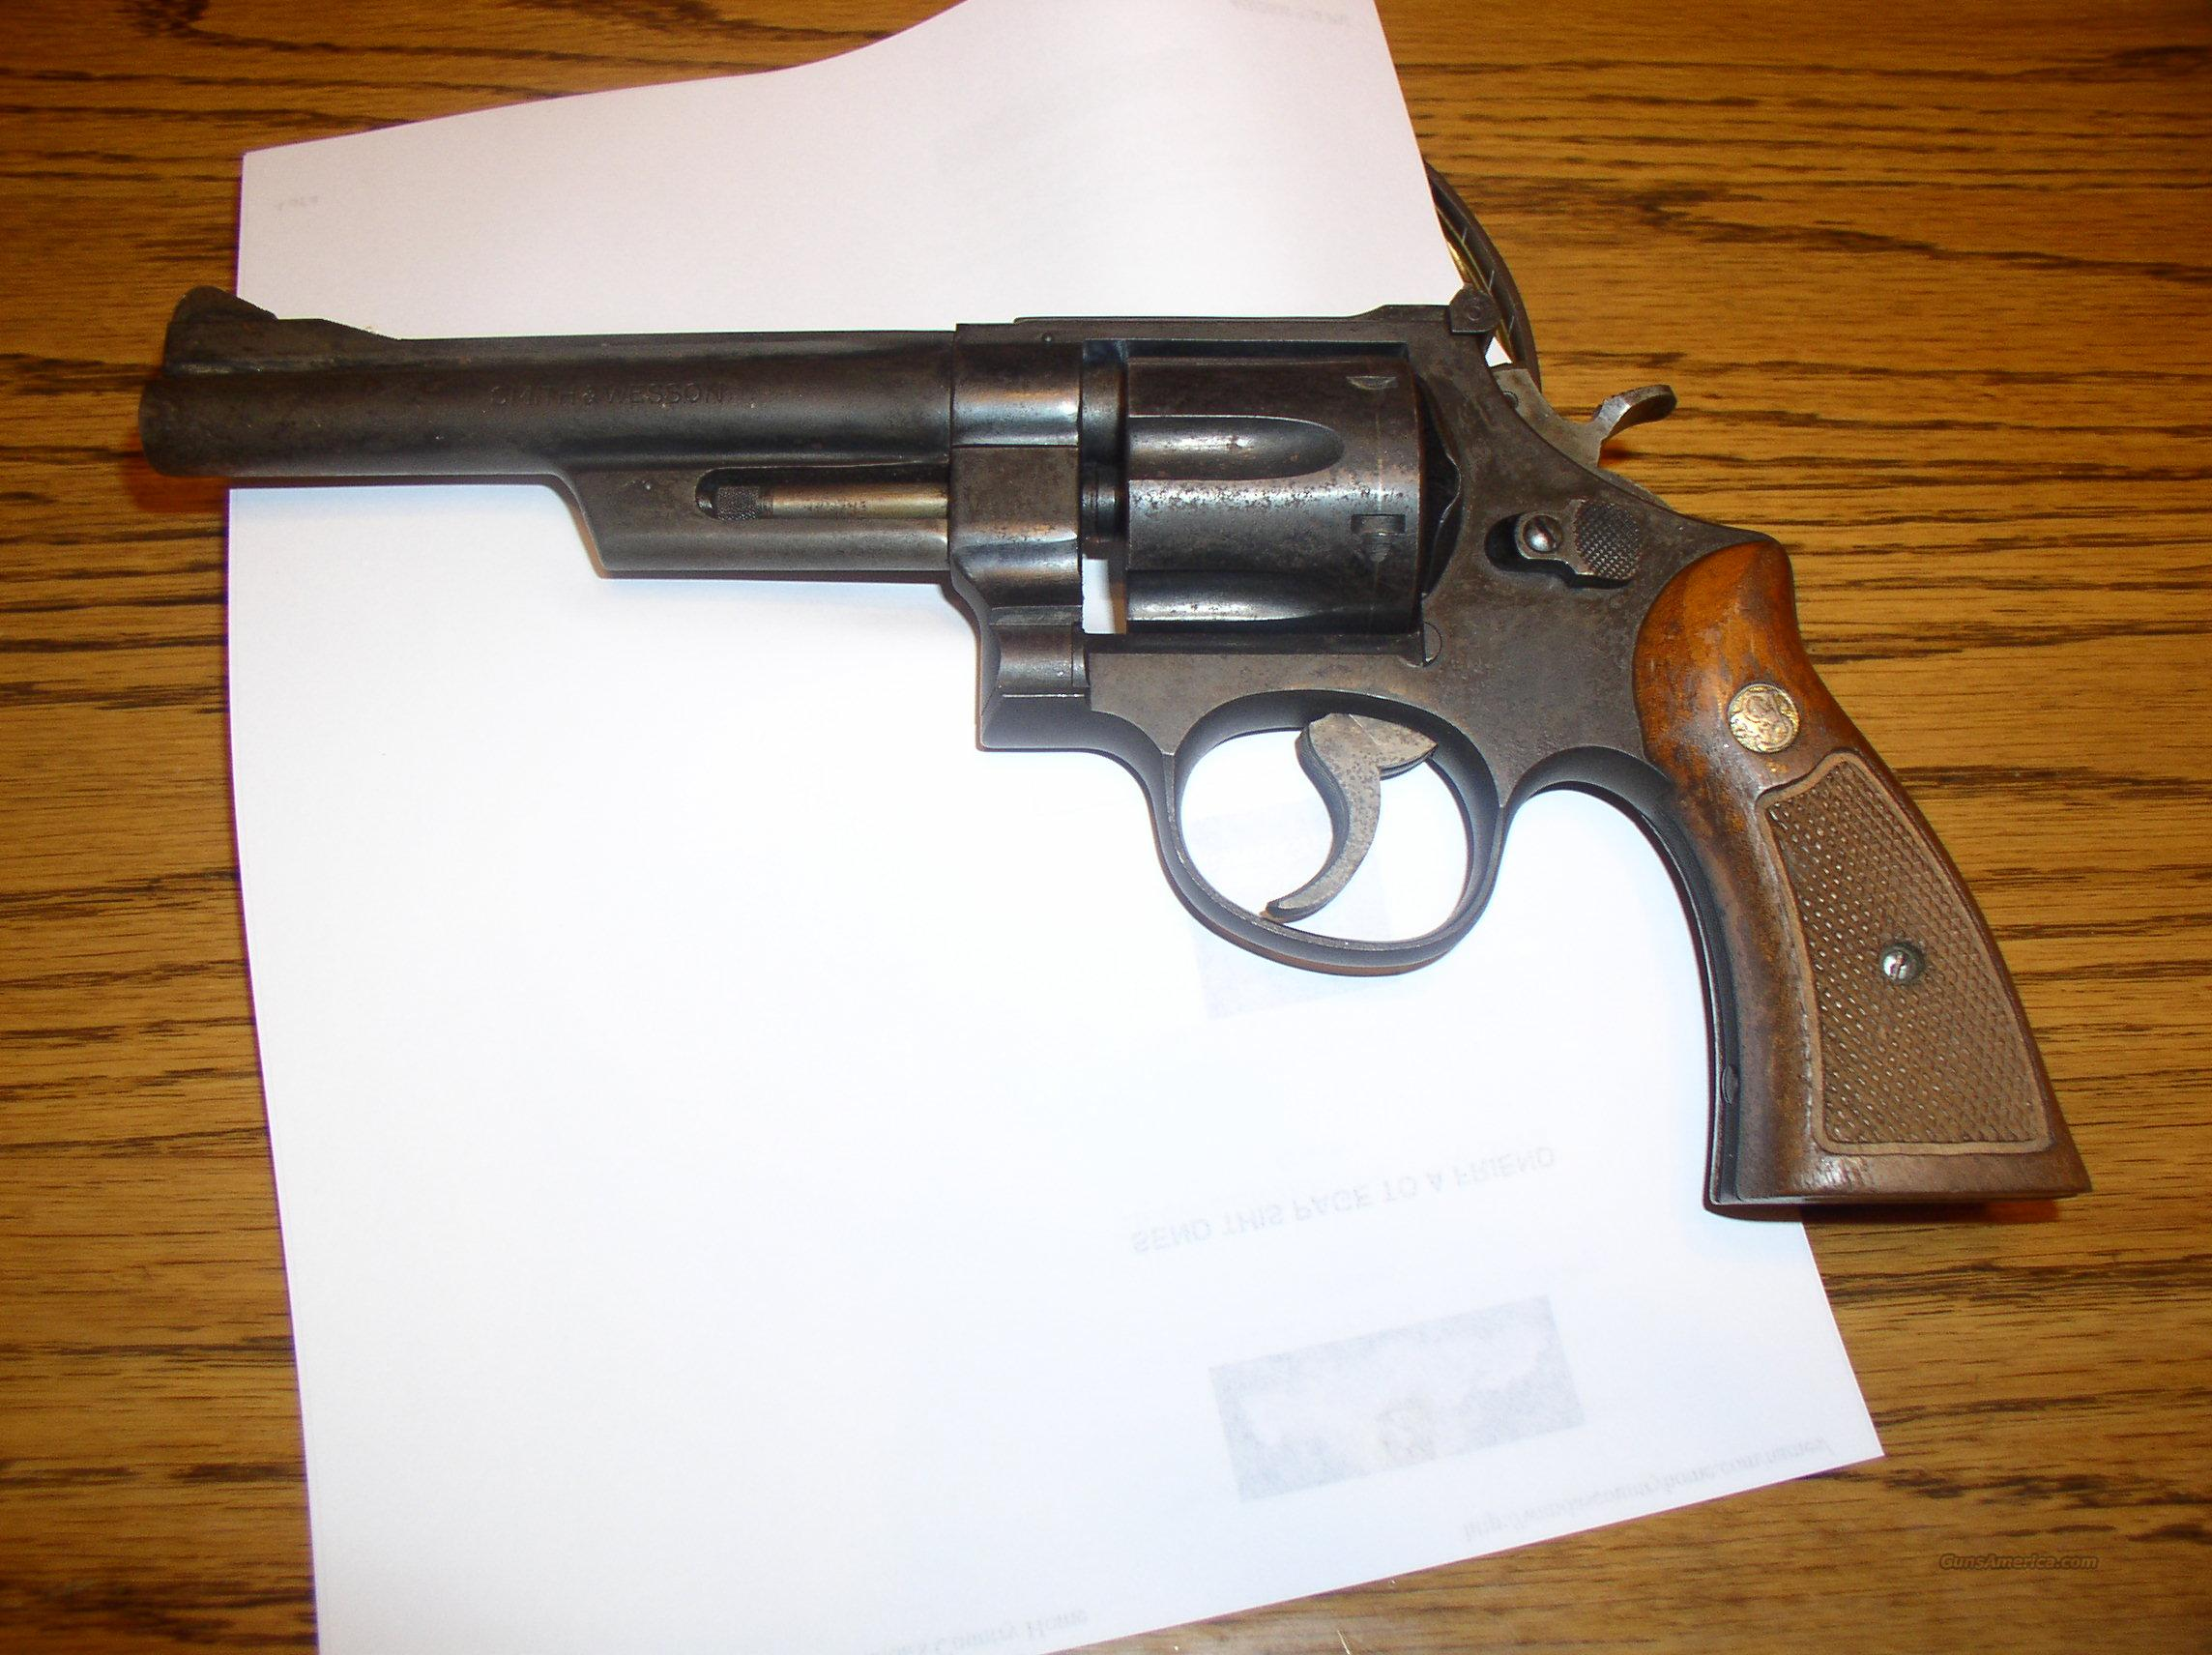 SMITH & WESSON  MOD.28-2  Guns > Pistols > Smith & Wesson Revolvers > Full Frame Revolver